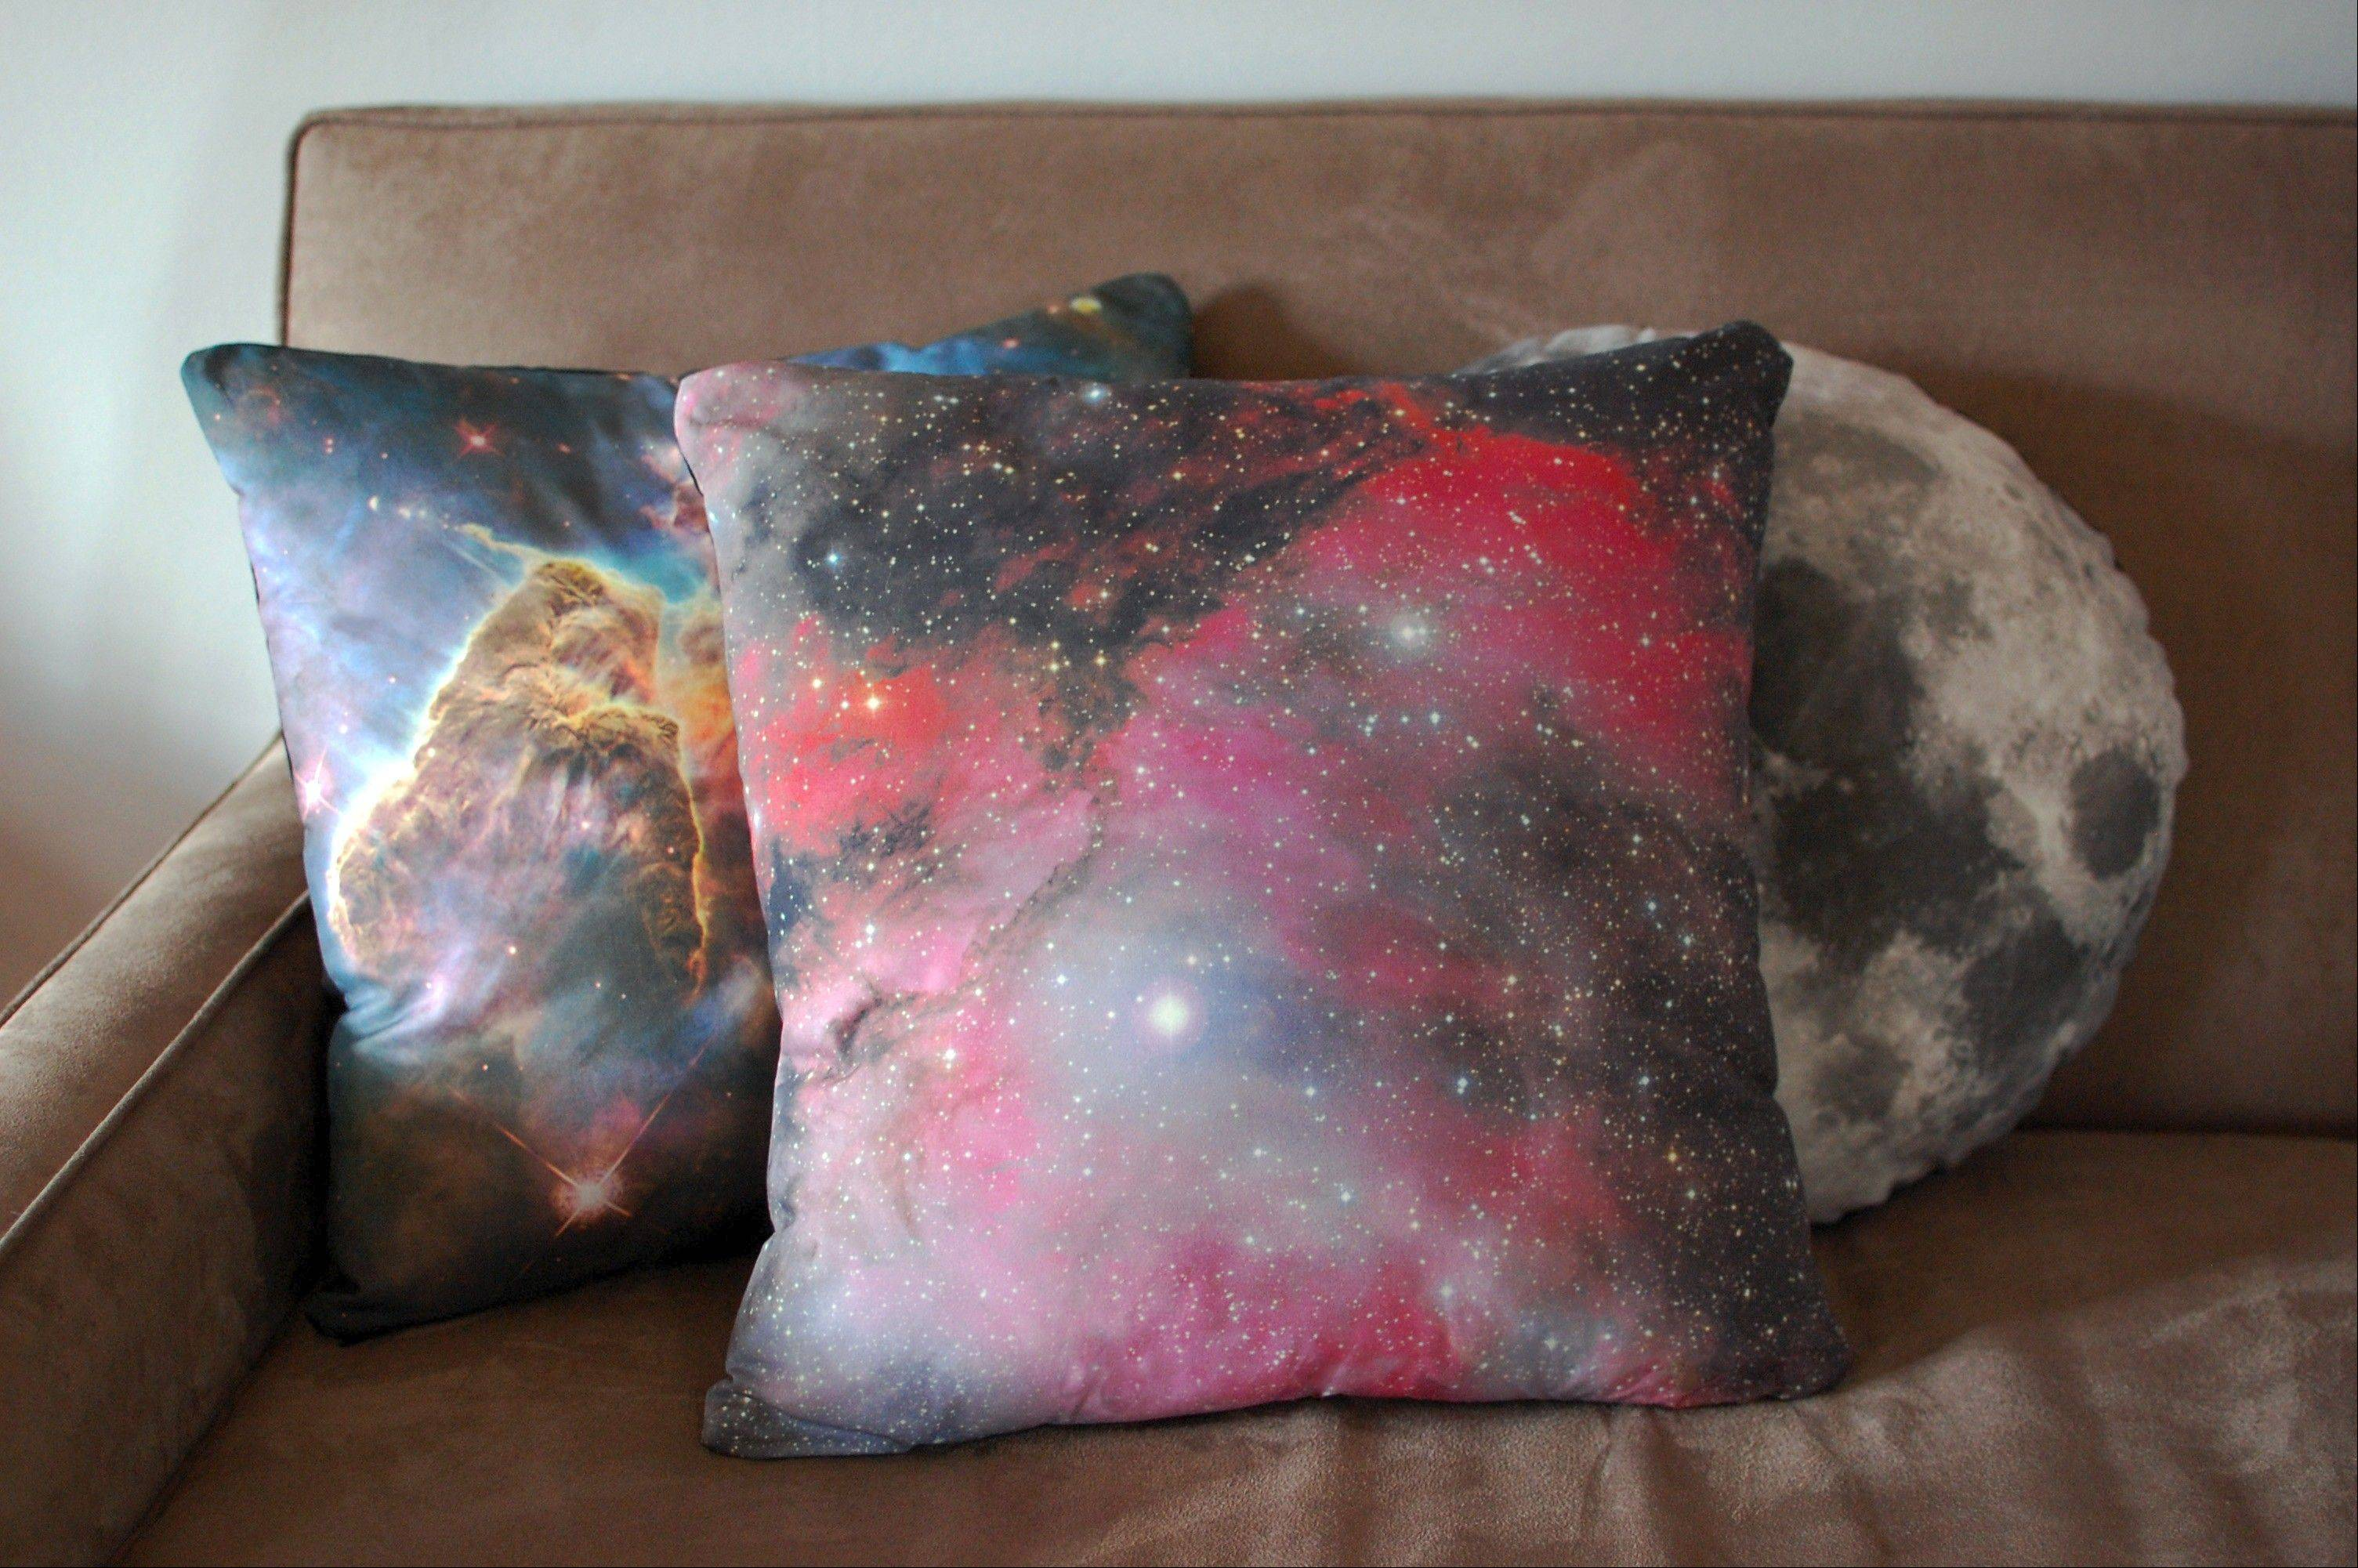 Galaxy pillow covers feature images from the Hubble telescope.